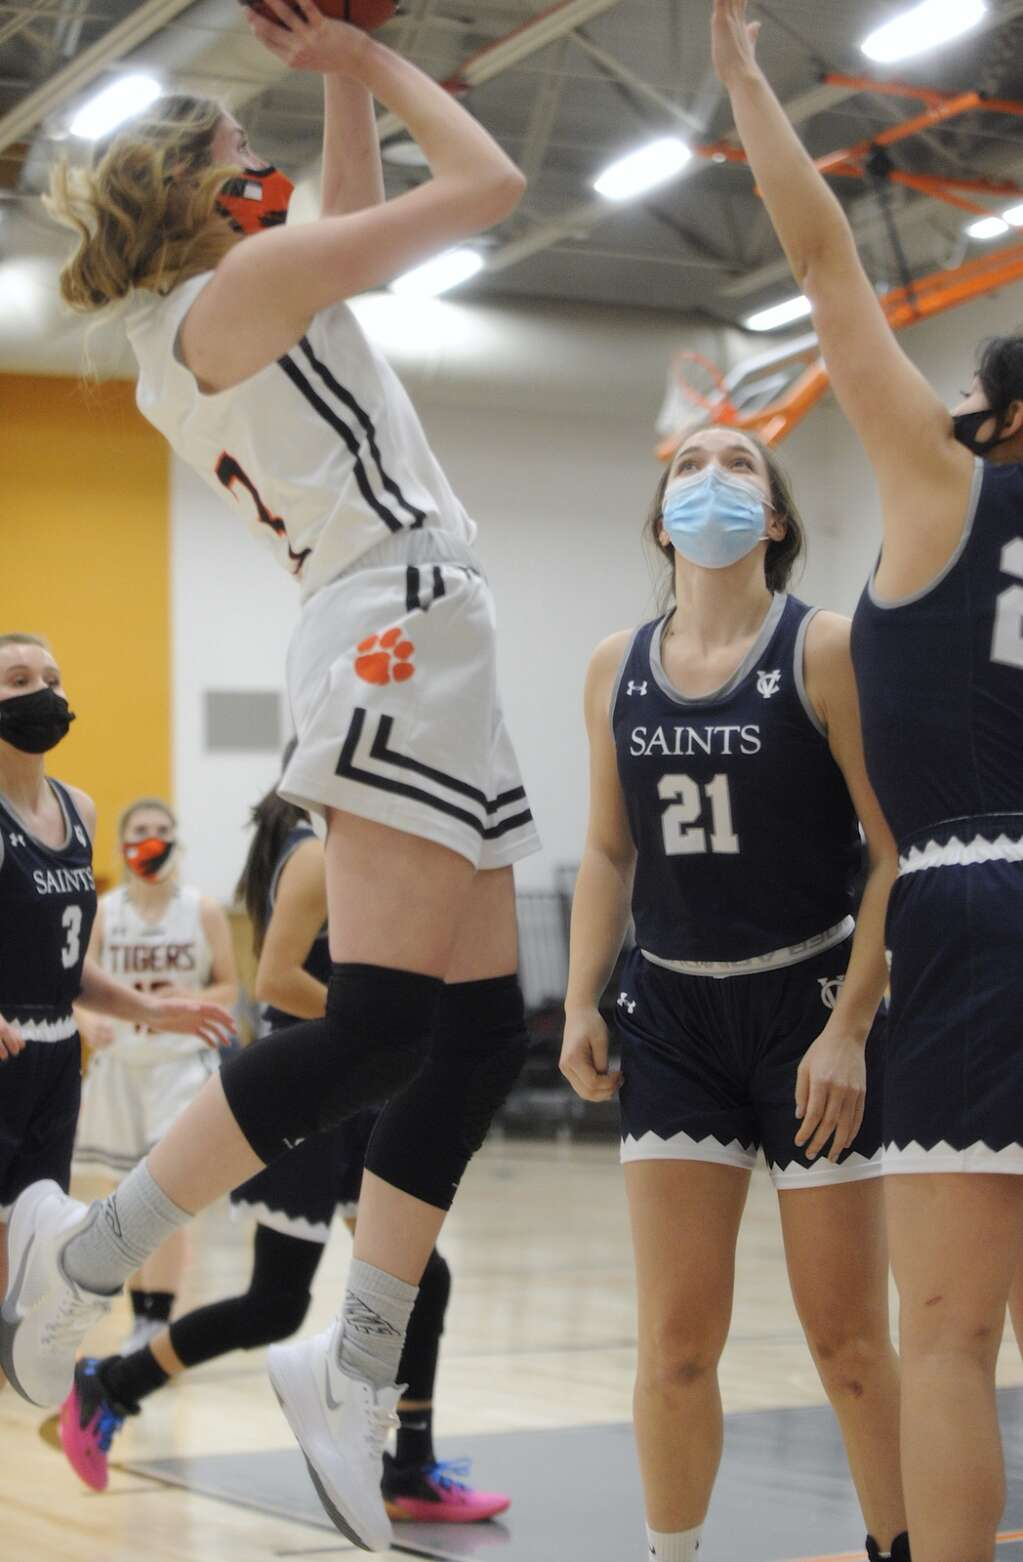 Hayden sophomore Emma Seagraves puts up a jump shot during a game against Vail Christian on Friday night. (Photo by Shelby Reardon)